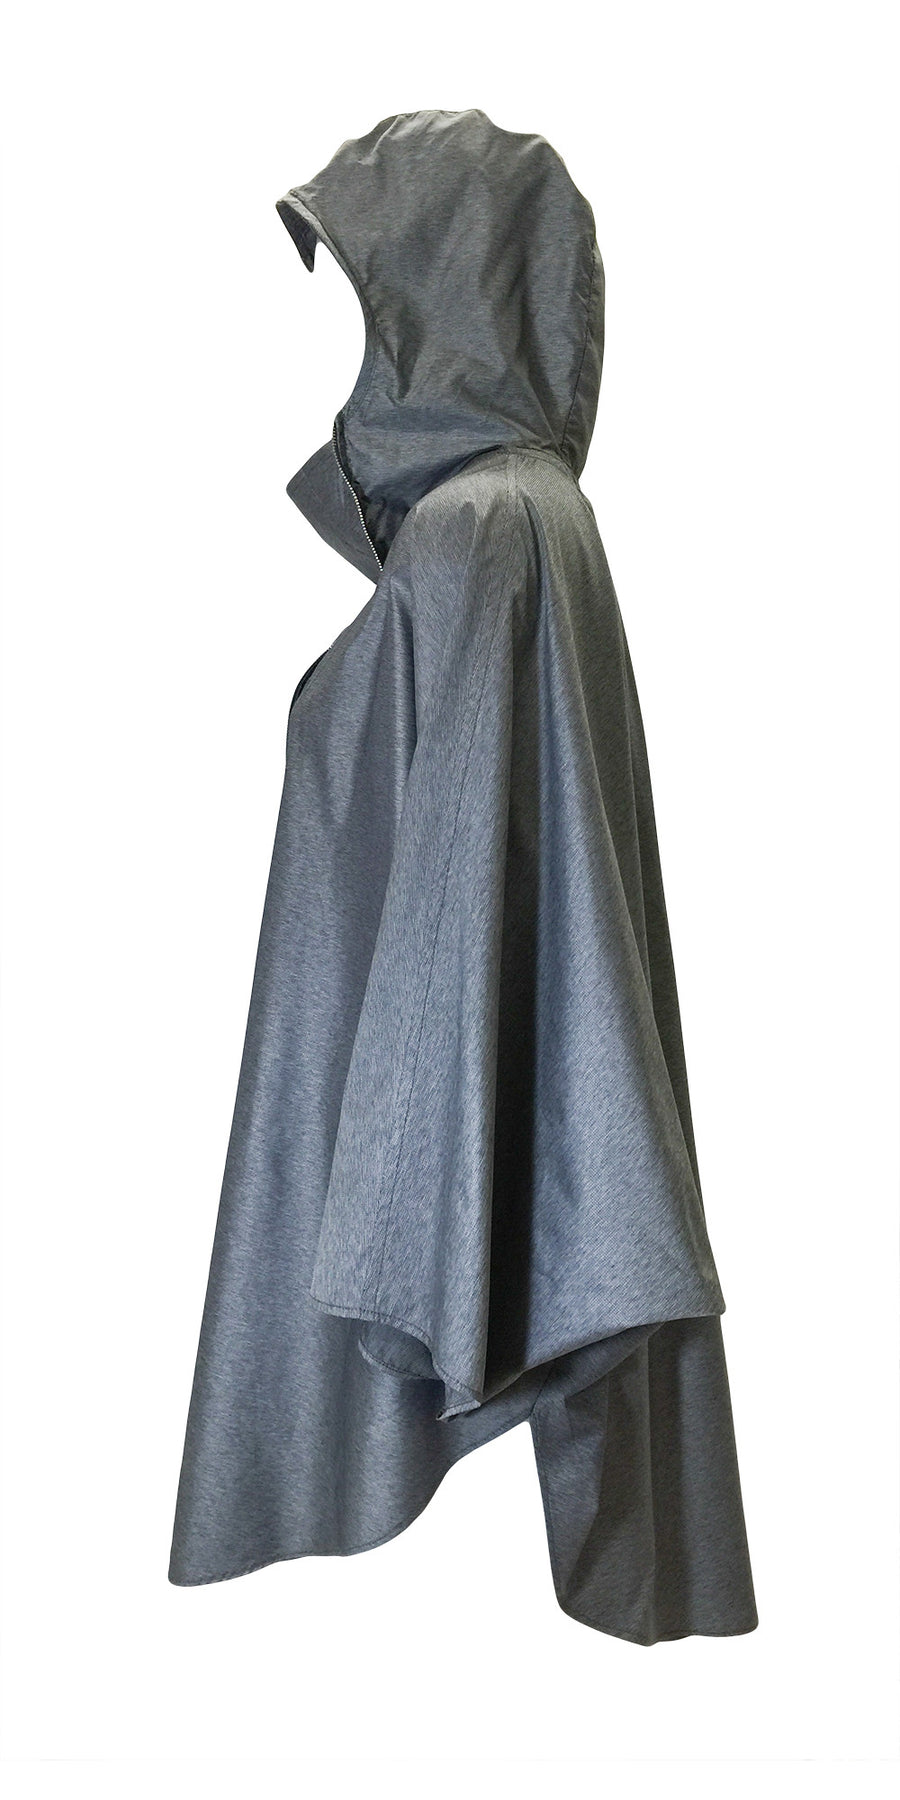 WOMEN'S Heather Grey Ultralight Nylon Poncho by Atelieri - ATELIERI  - 1